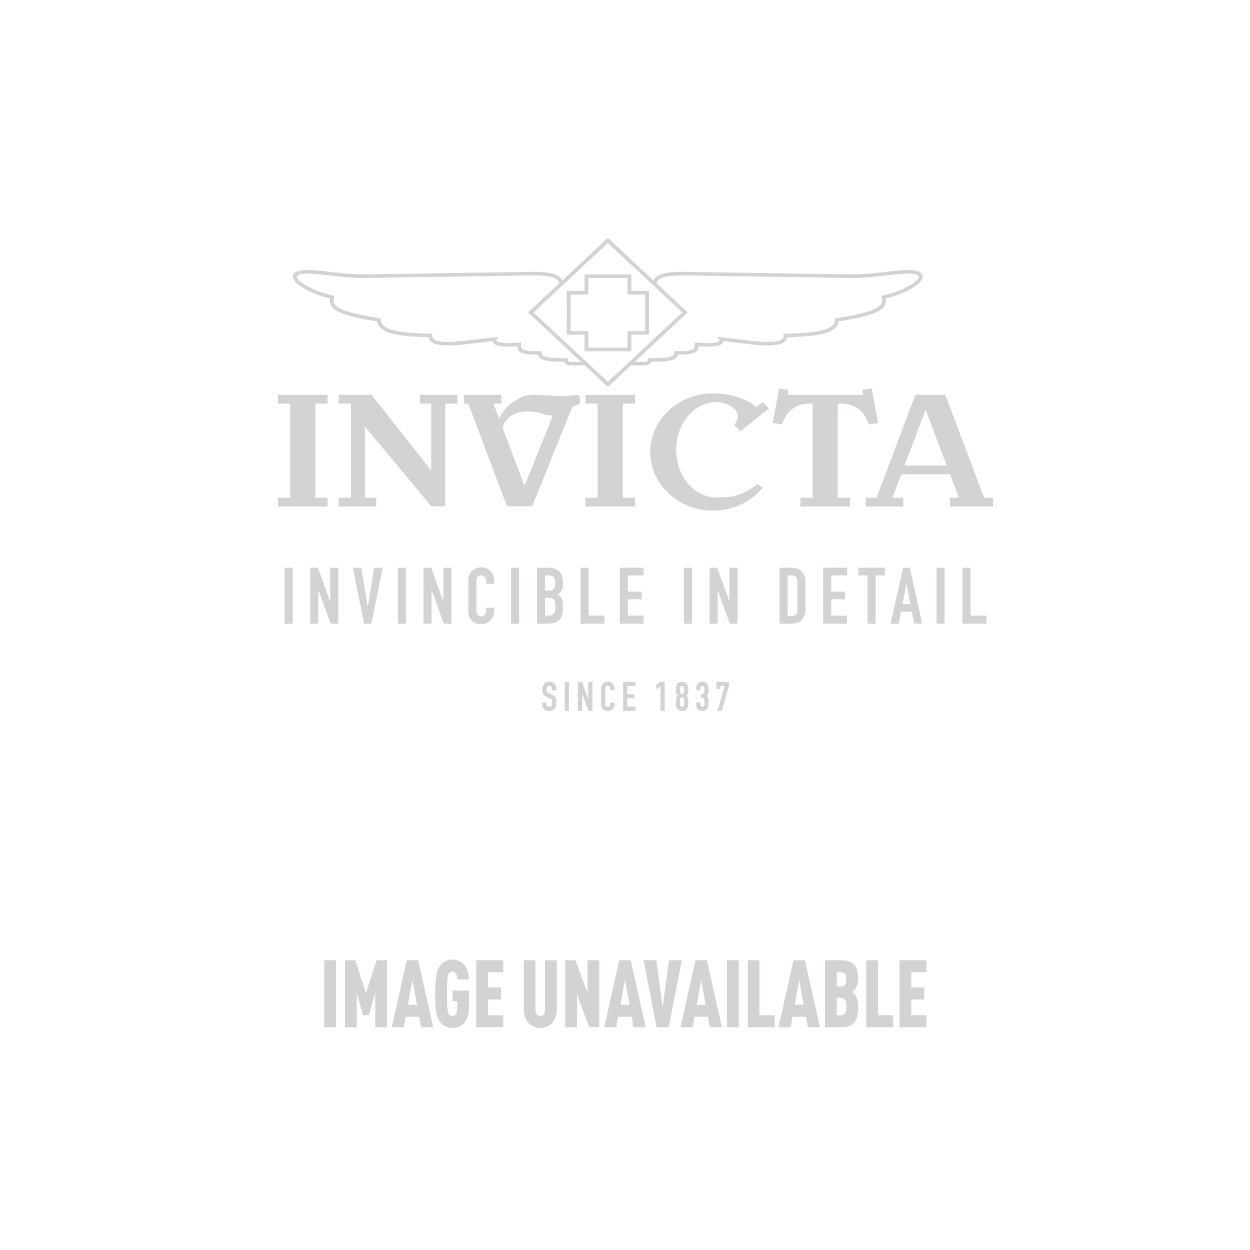 Invicta Specialty Swiss Movement Quartz Watch - Stainless Steel case Stainless Steel band - Model 21481